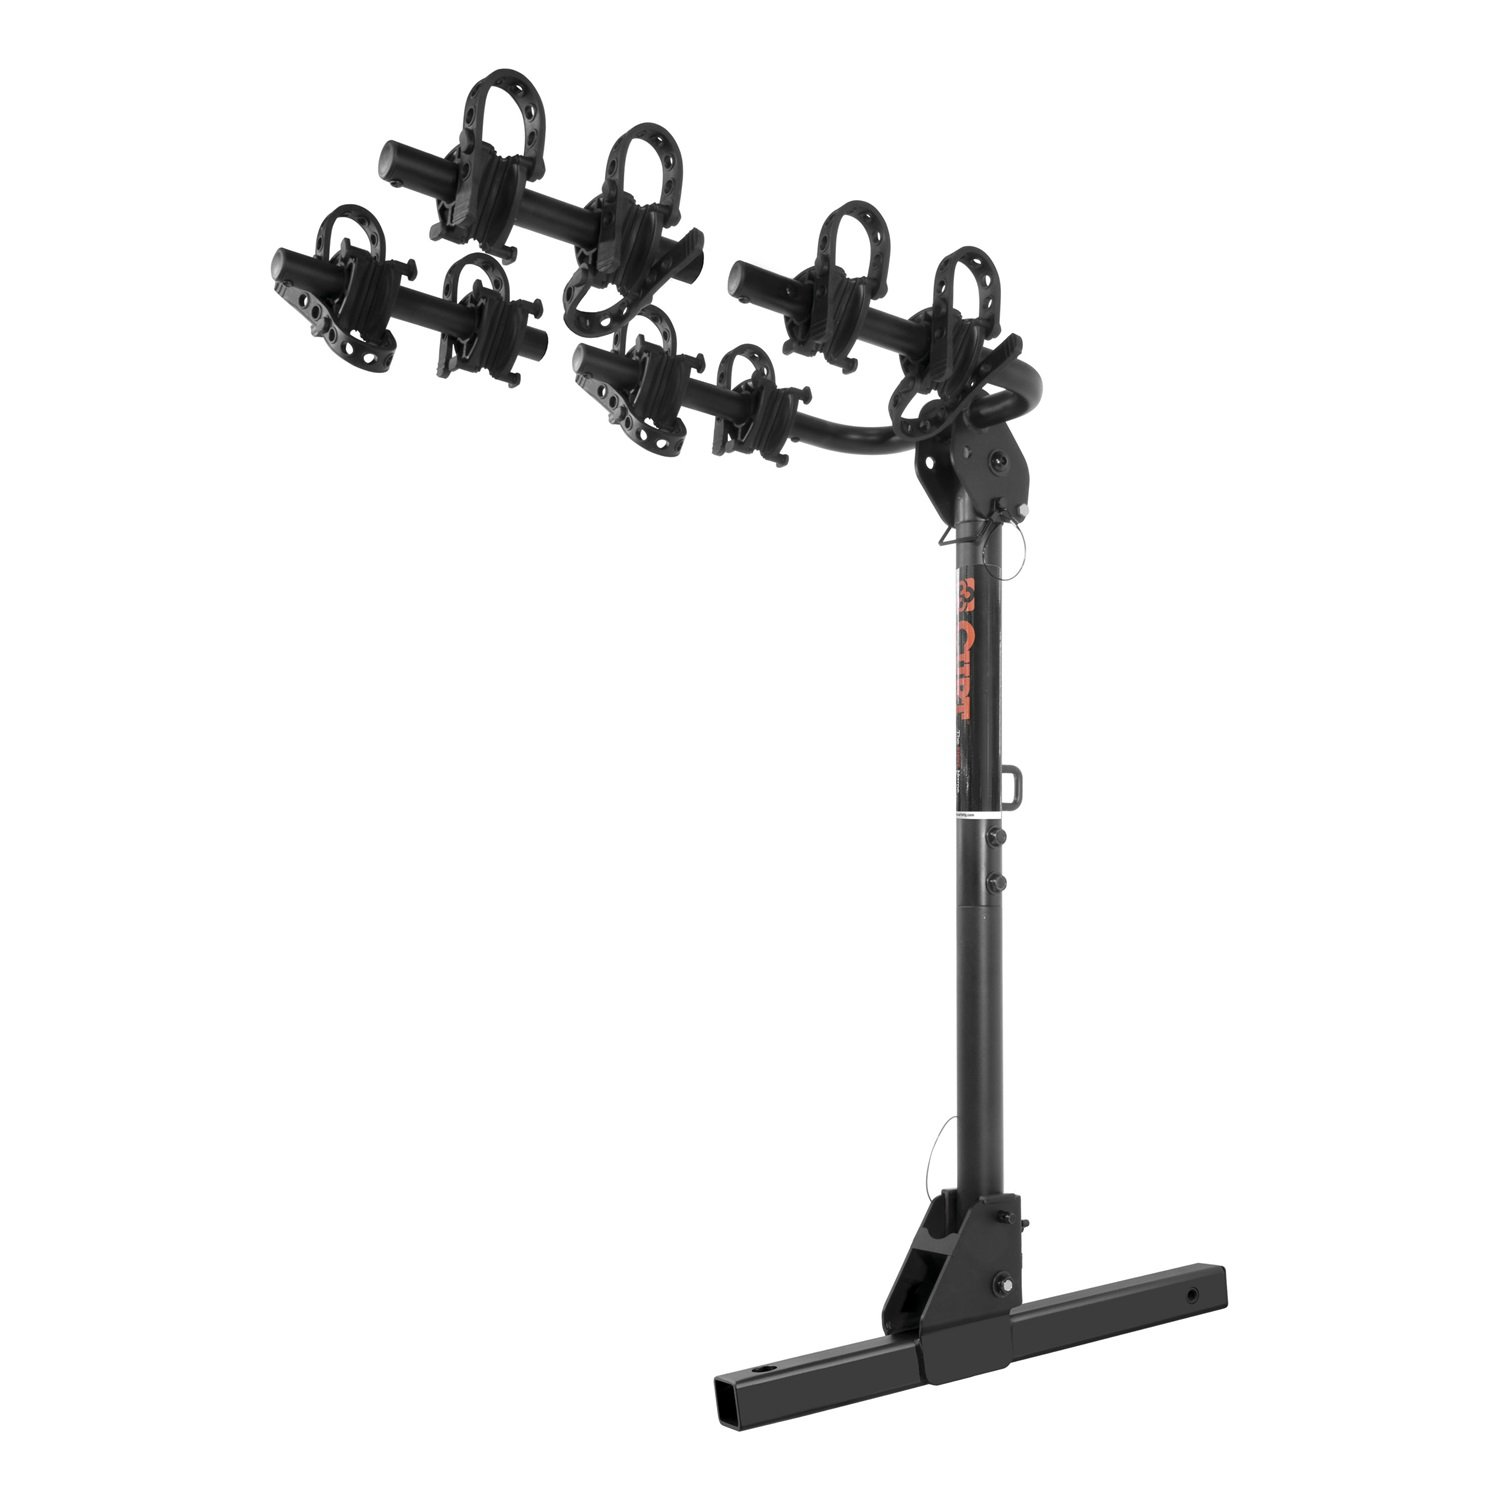 CURT 18031 Towable Extendable Hitch Bike Rack, 2 or 4 Bikes, Fits 2-Inch Receiver, 2,000 lbs. GTW by CURT